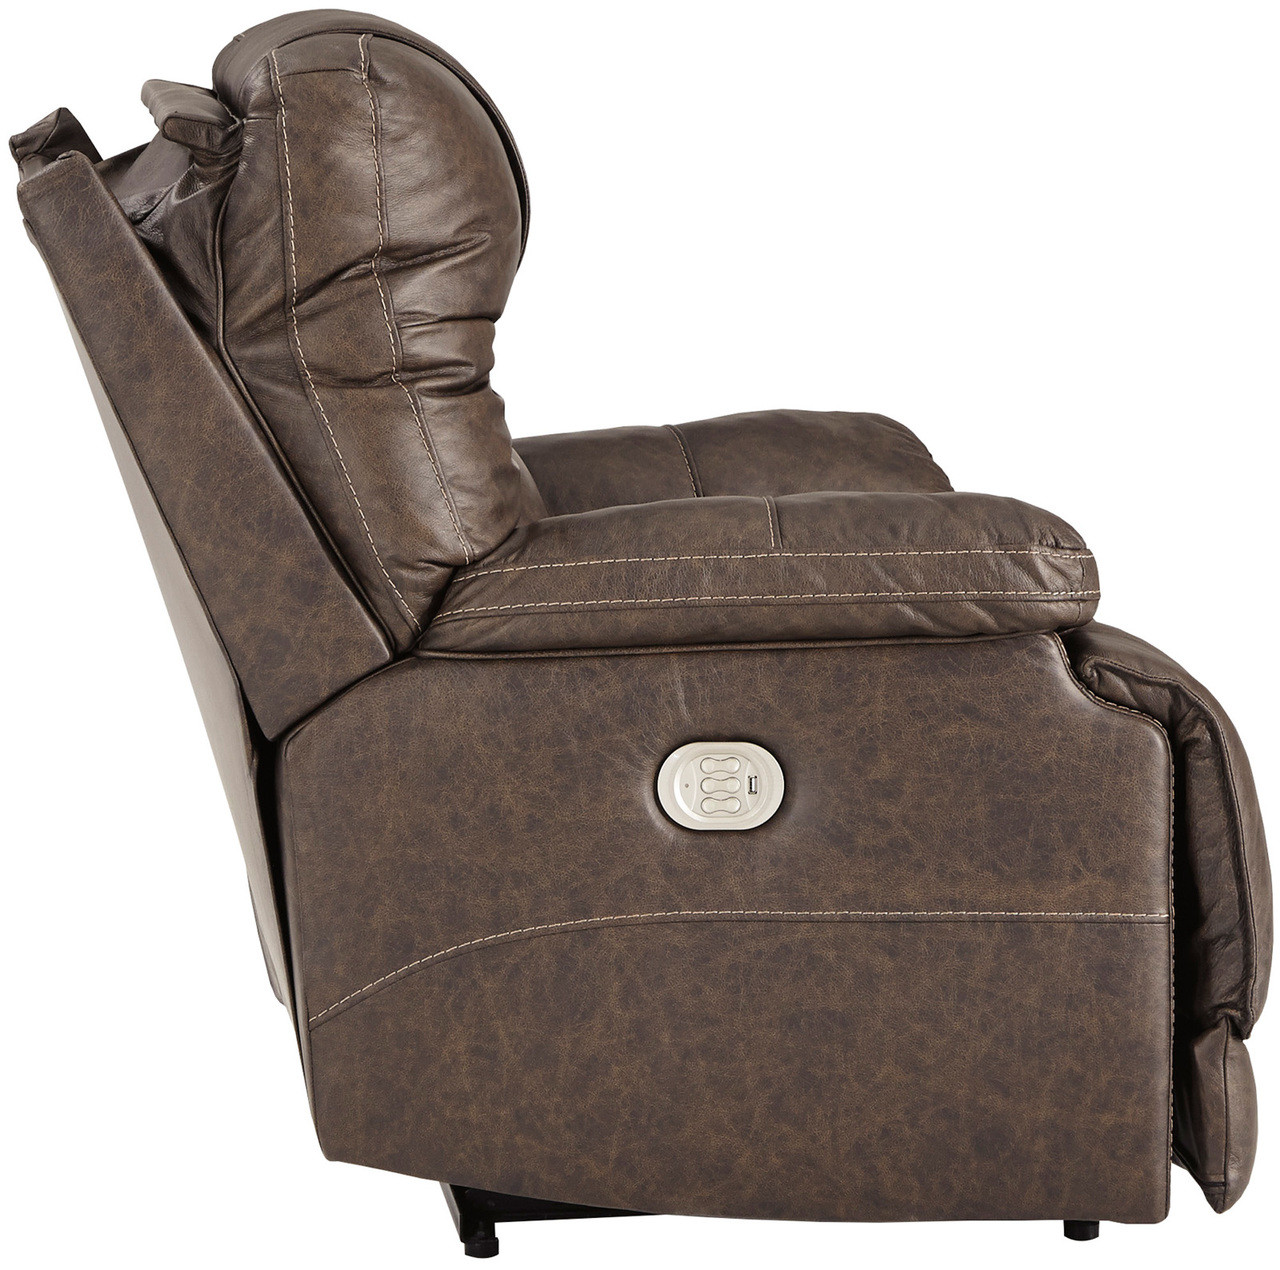 Brilliant Wesley Top Grain Leather Power Recliner With Adjustable Lumbar And Headrests Ibusinesslaw Wood Chair Design Ideas Ibusinesslaworg